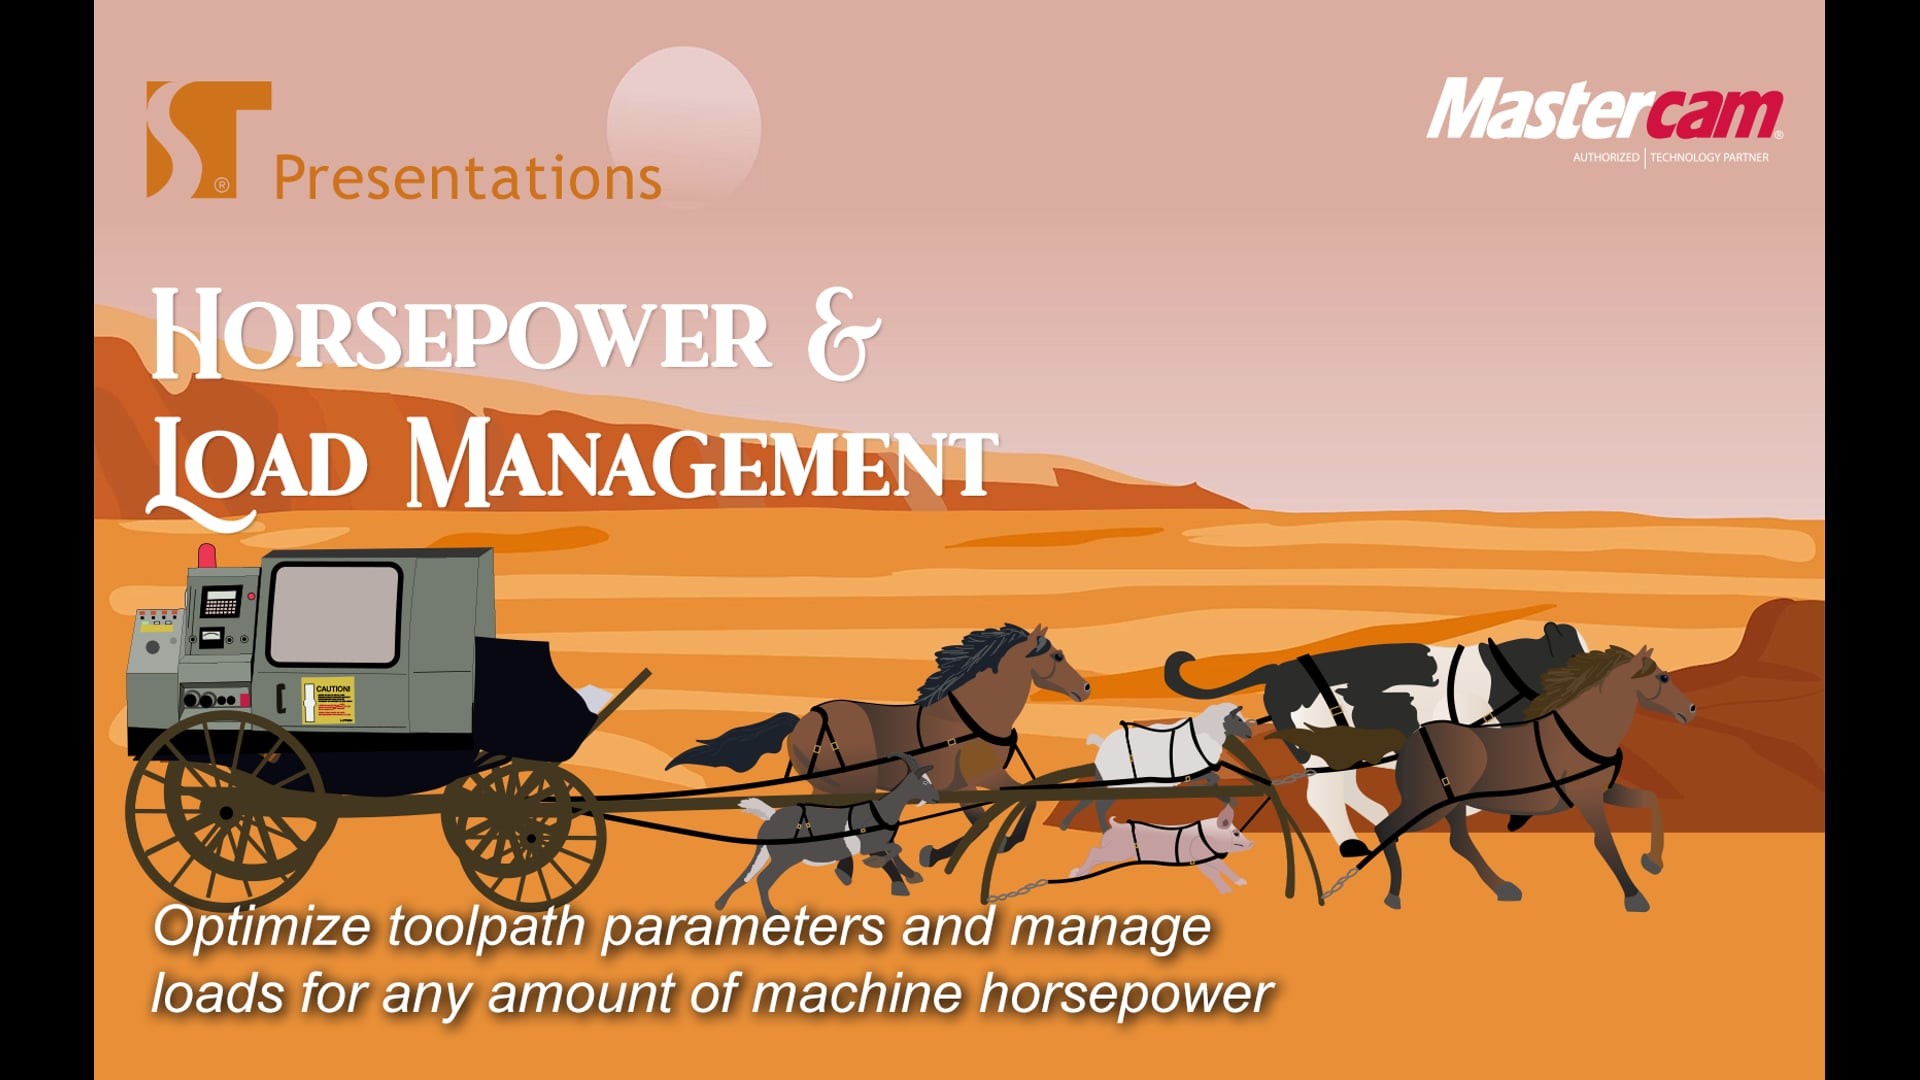 Horsepower and Load Management